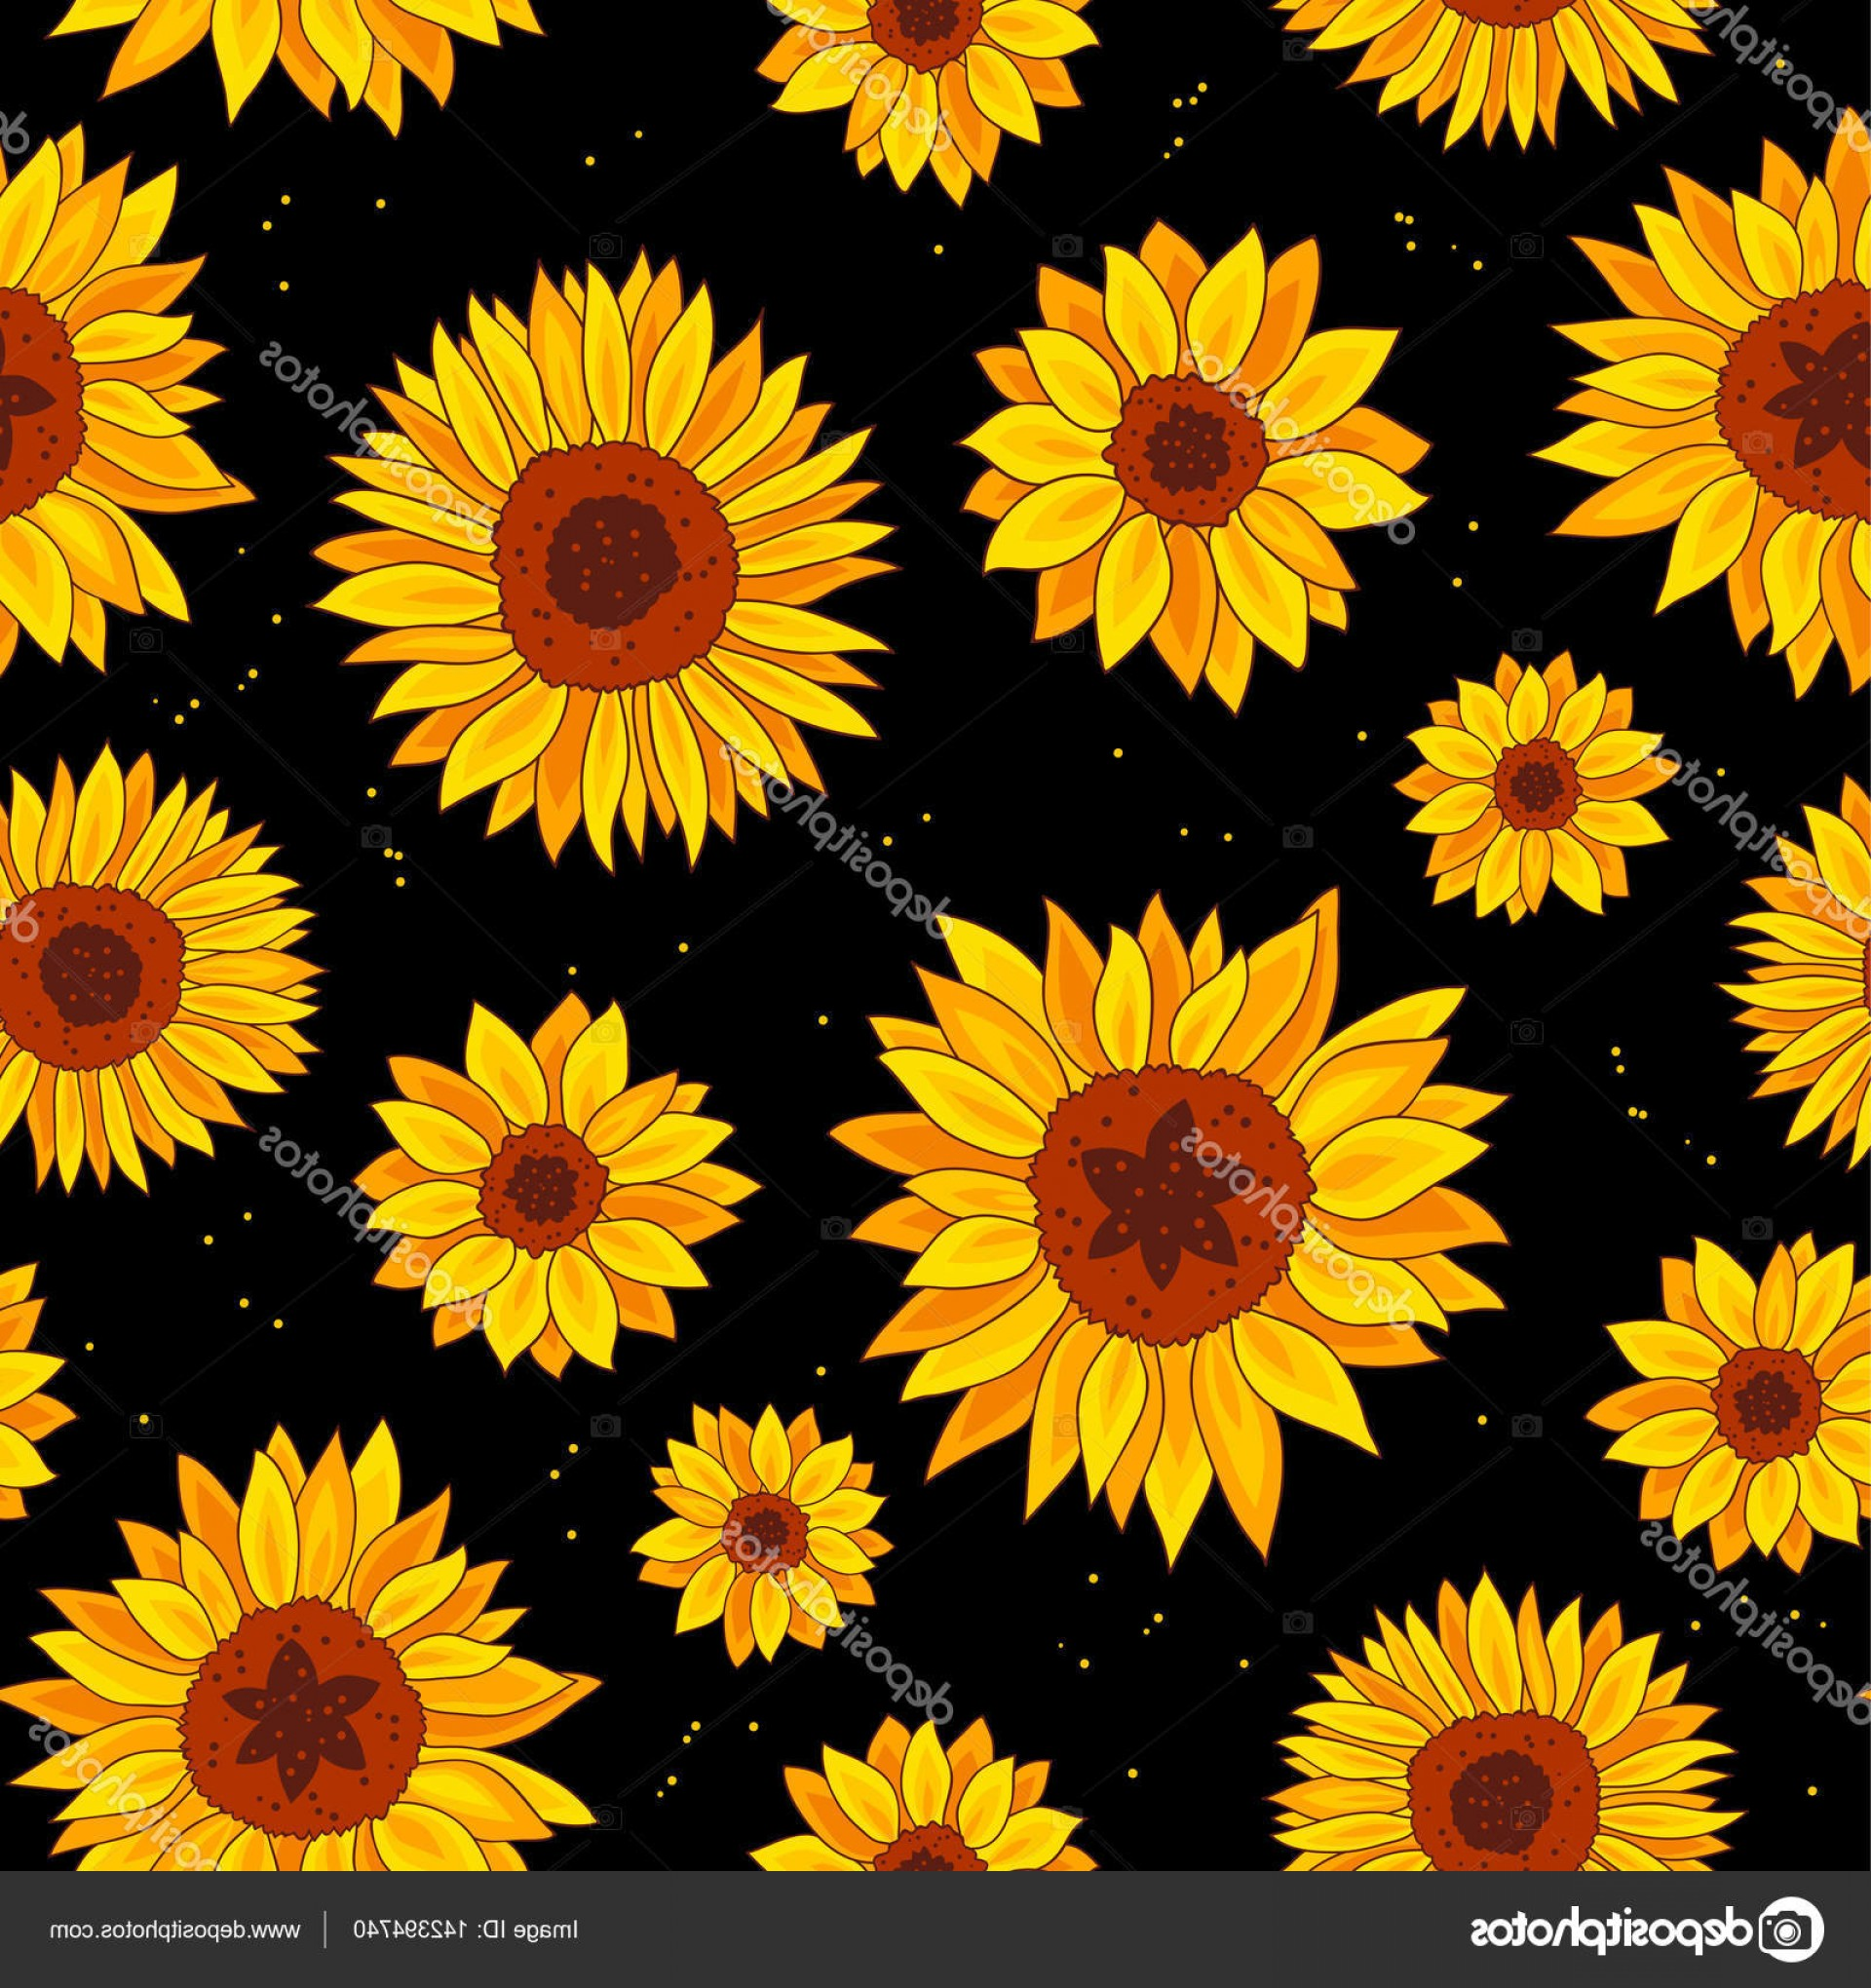 Sunflower Vector Pattern: Stock Illustration Seamless Pattern Of Sunflowers